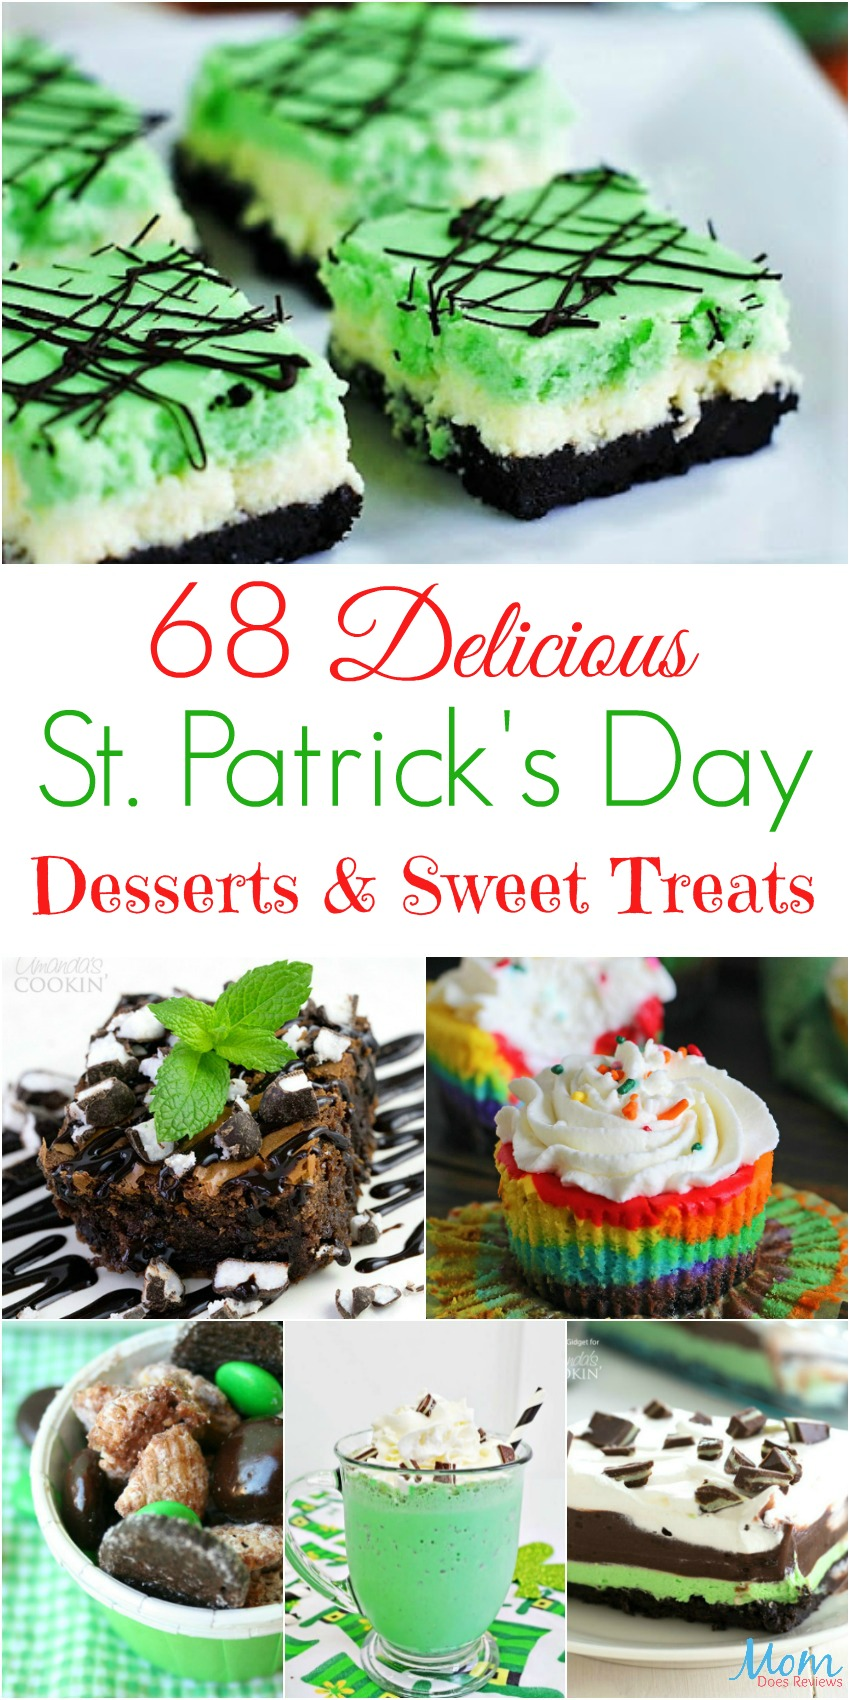 68 Delicious St. Patrick's Day Desserts & Sweet Treats